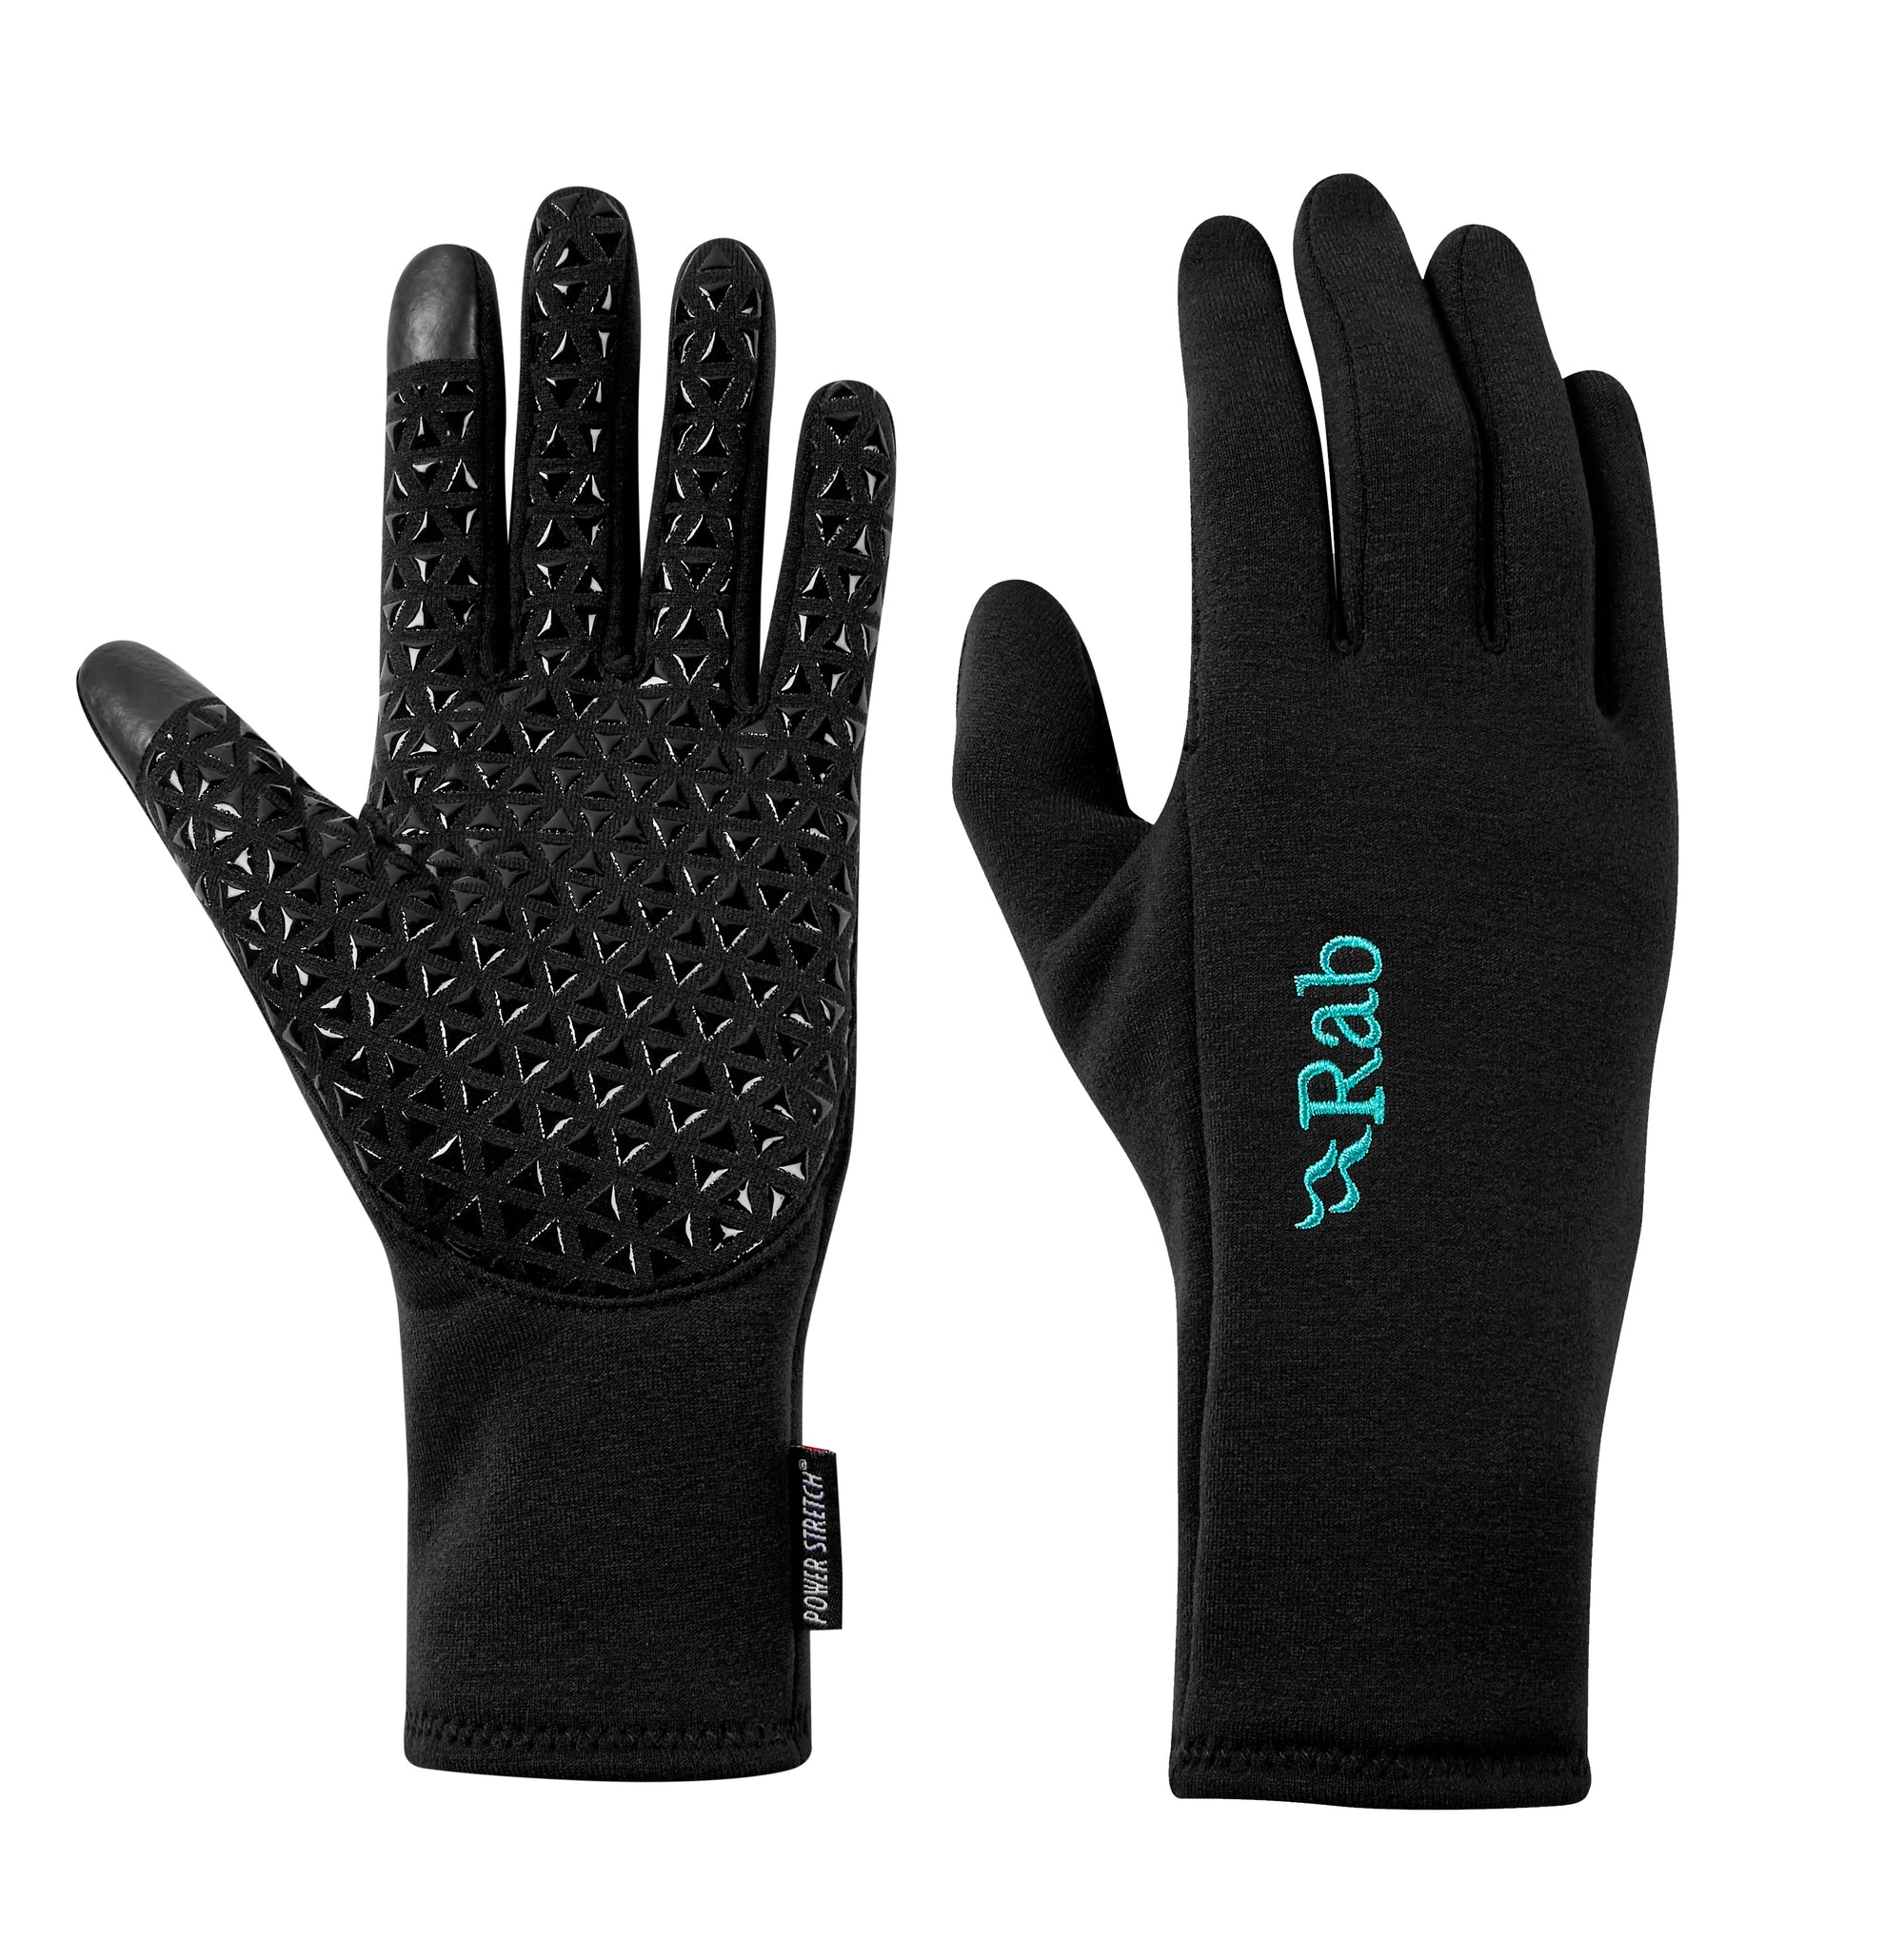 Rab Power Stretch Contact Grip Glove Womens